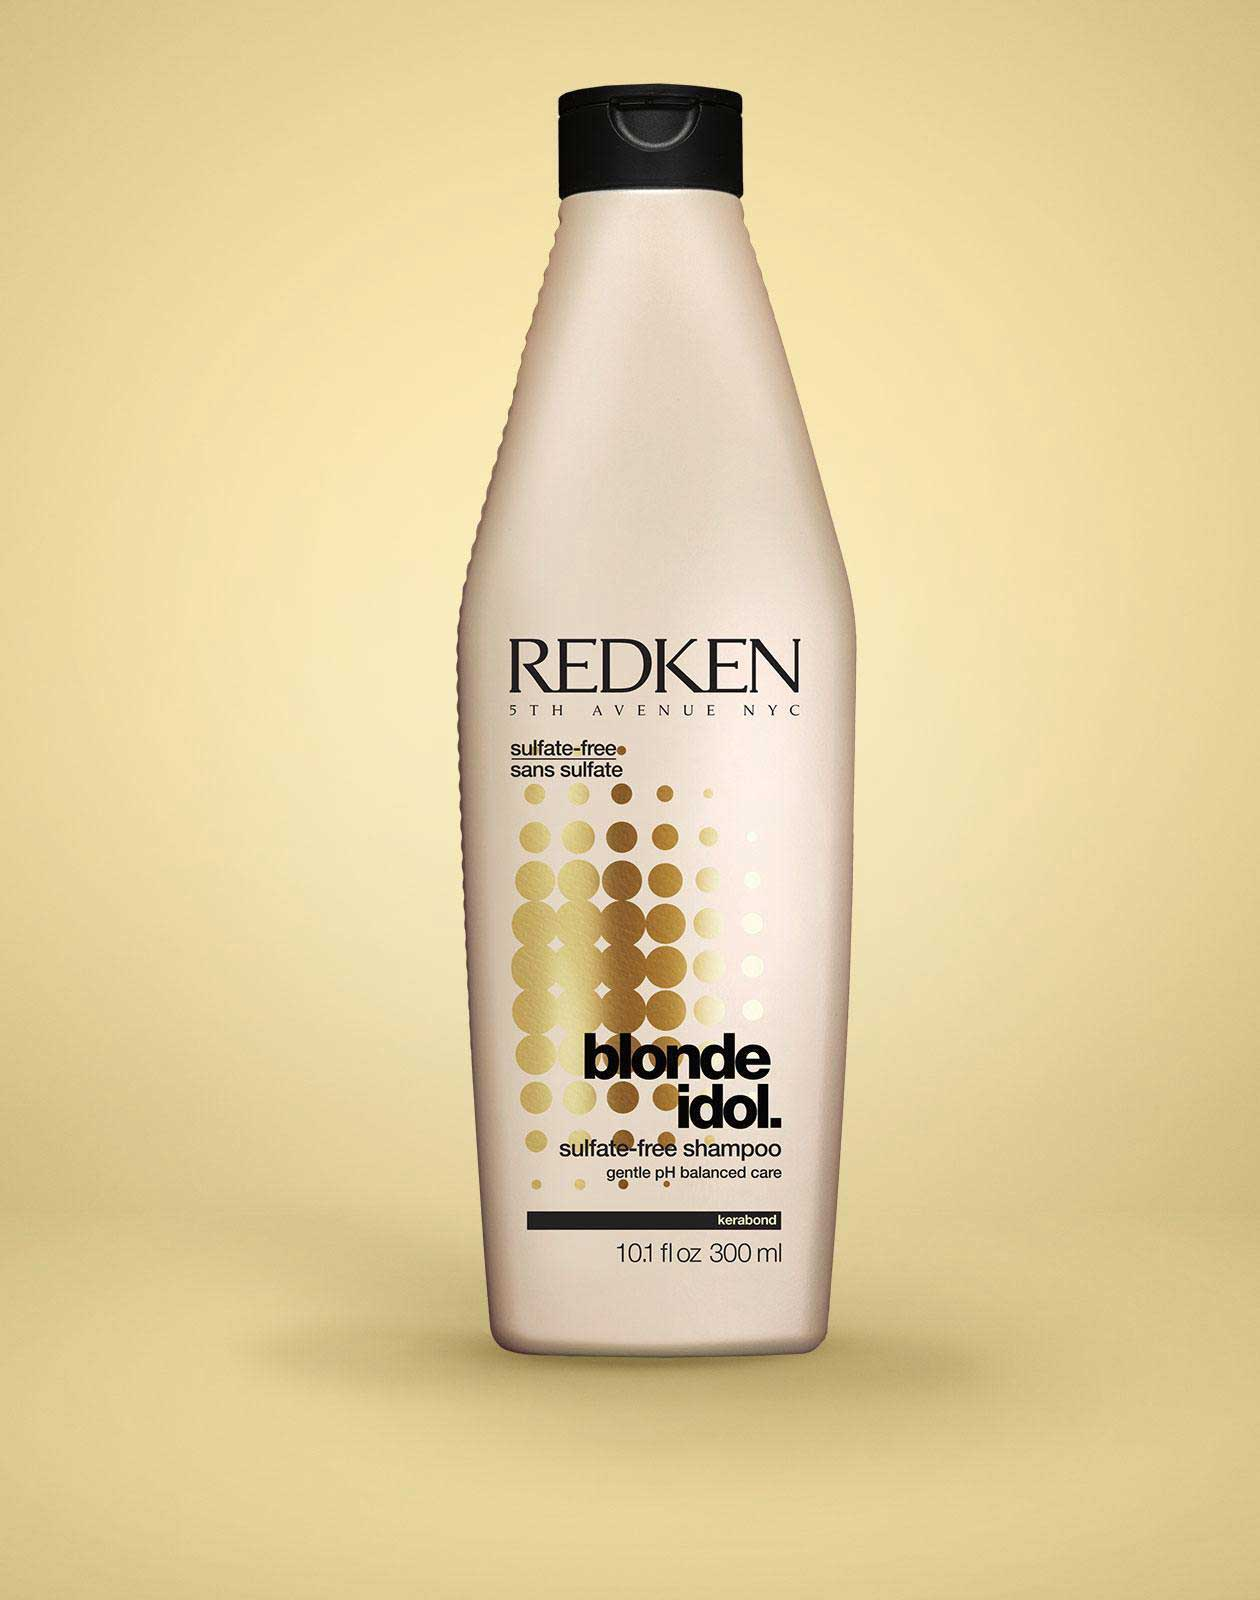 sulfate free shampoo for blonde colored hair redken blonde idol shampoo. Black Bedroom Furniture Sets. Home Design Ideas